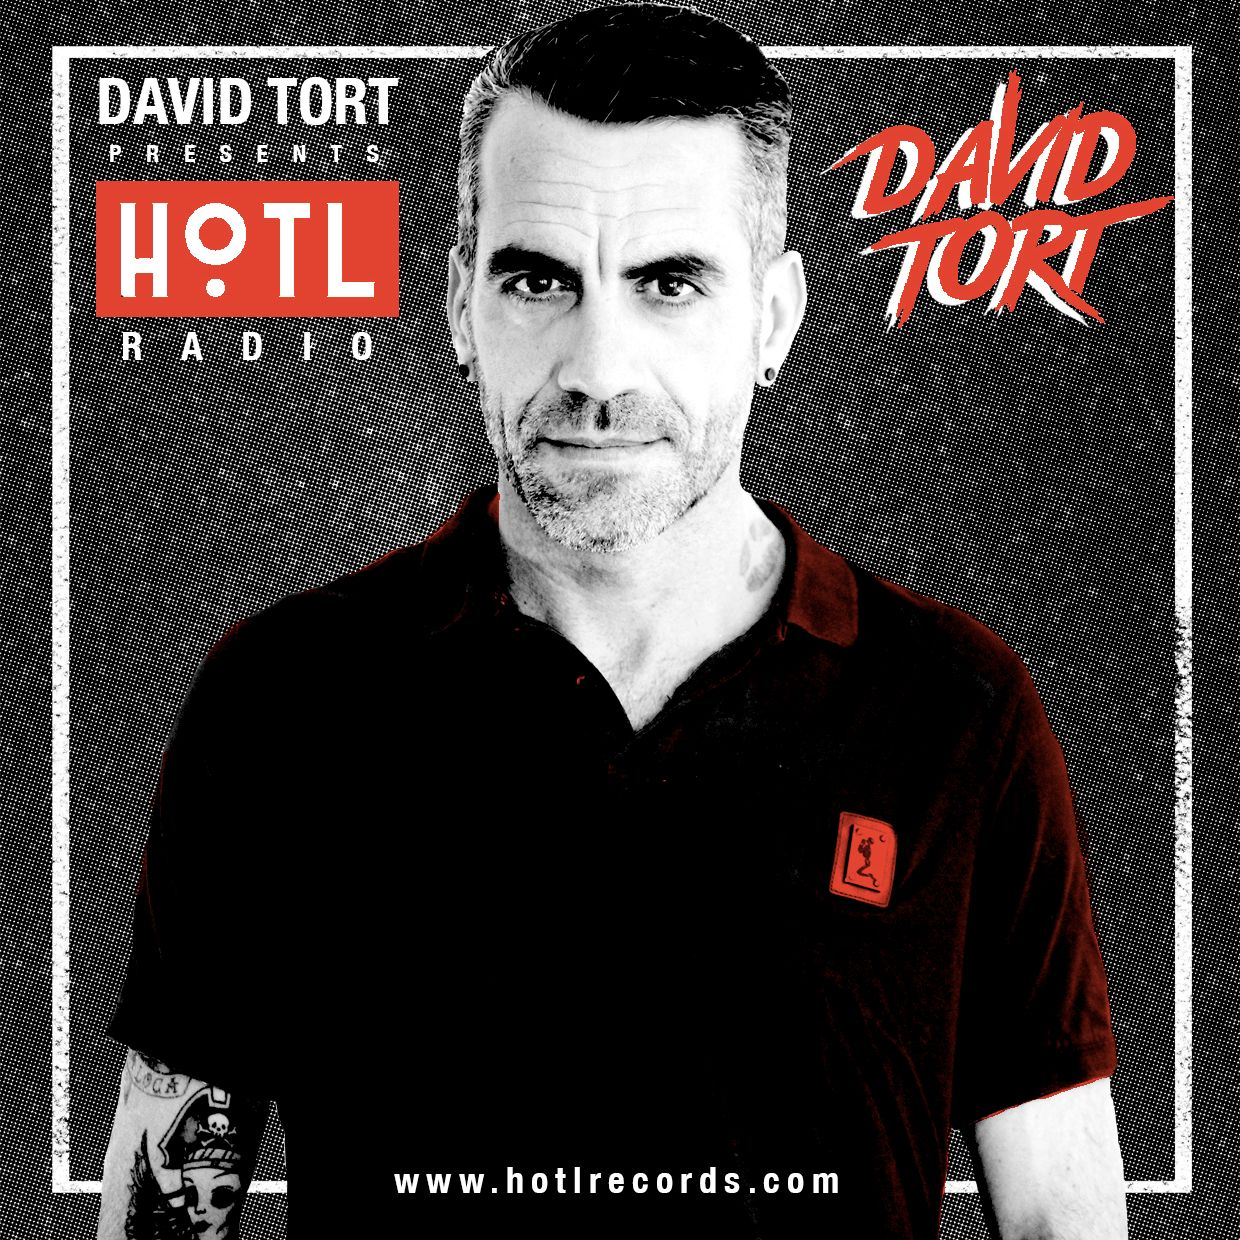 David Tort Presents HoTL Radio 166 (David Tort Mix)